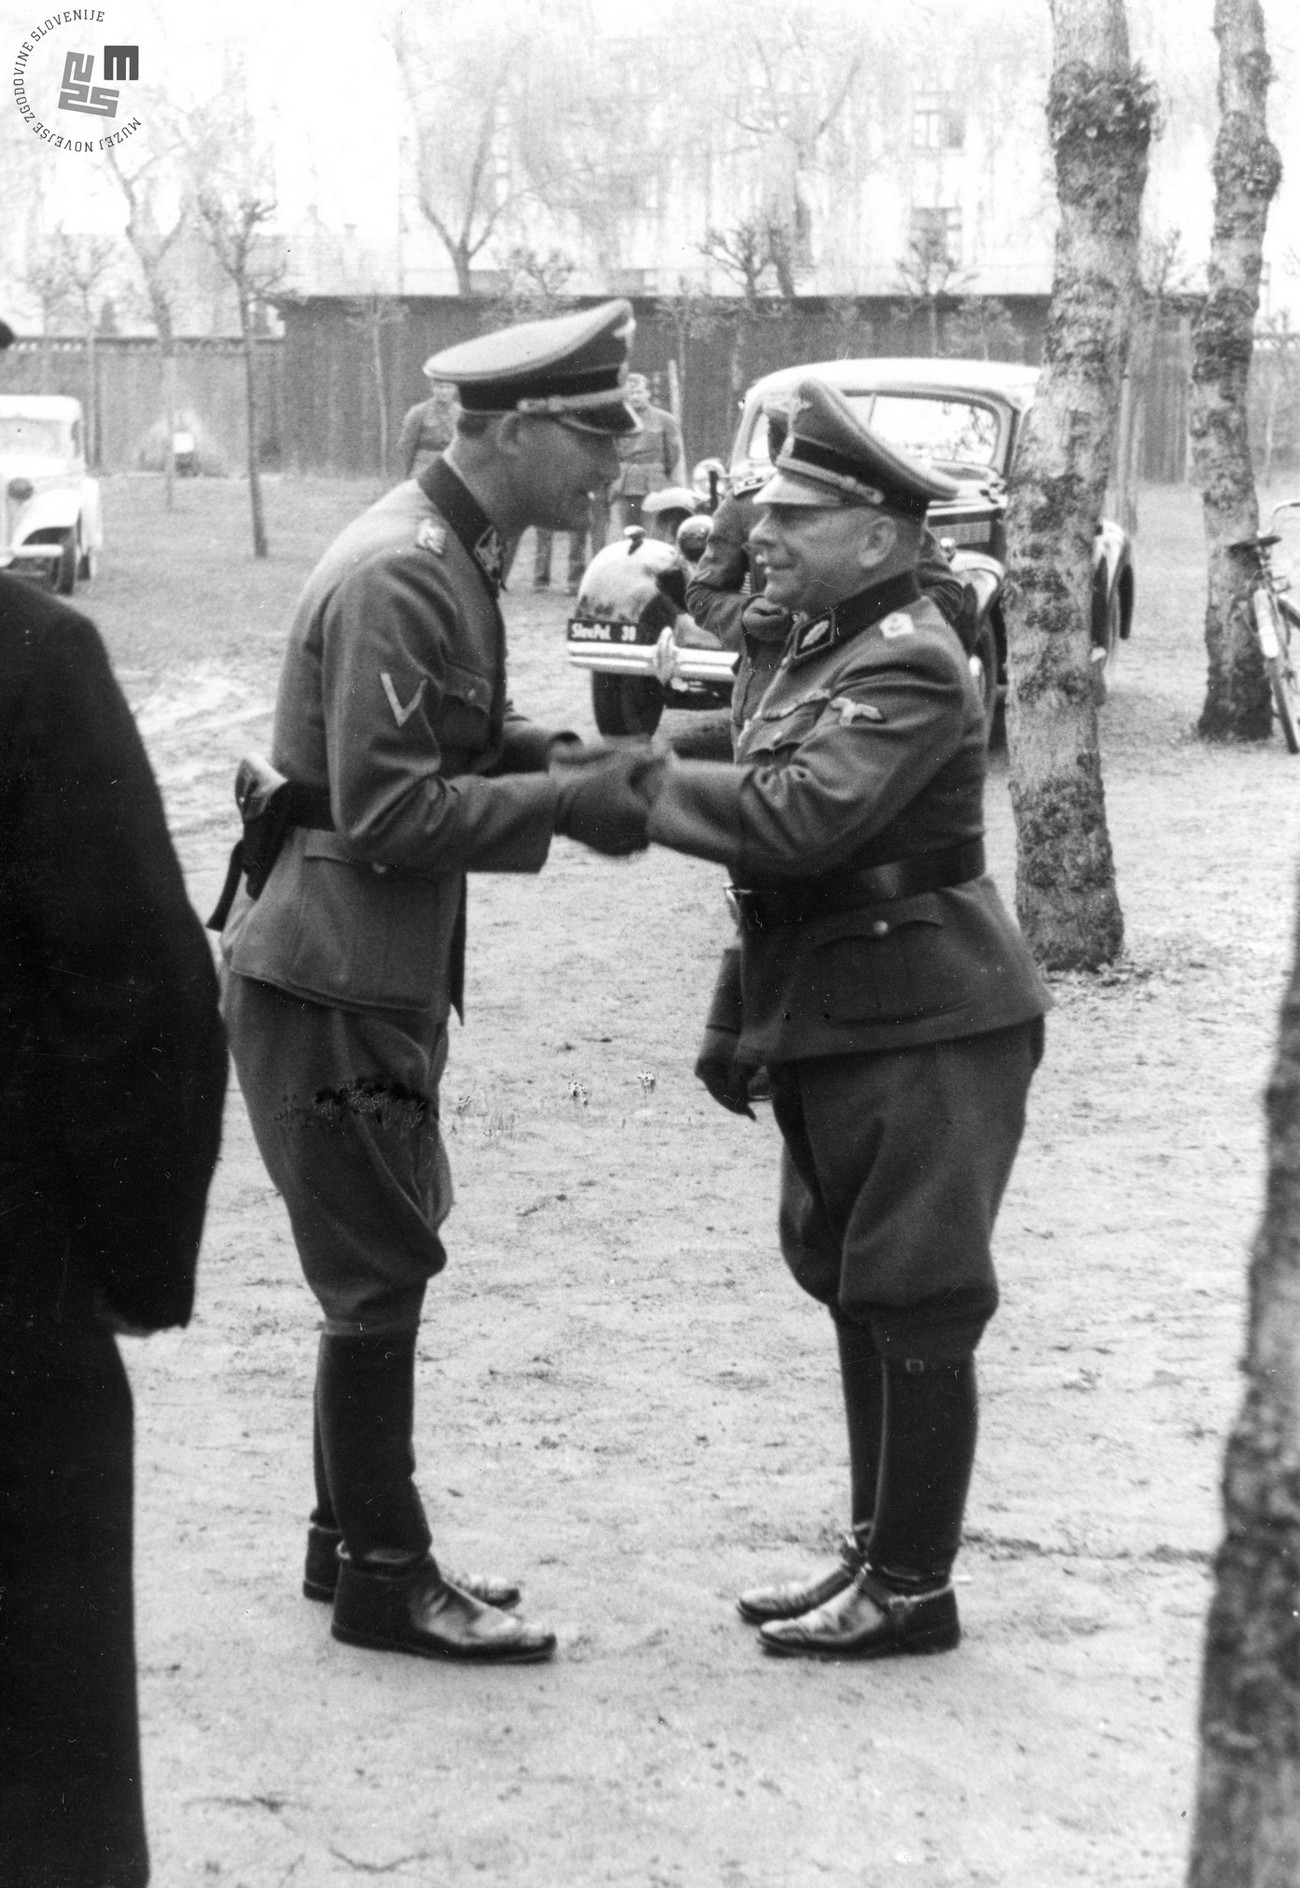 In the summer of 1944 a Kampfkommandant (Battle Commander) was assigned to Ljubljana. It was the Kampfkommandant's duty to ensure the defence of the city and its periphery in case of danger. Battle Commander was SS - standartenführer Max Schimmelpfennig (right). On the left Erwin Rösener. MNZS.